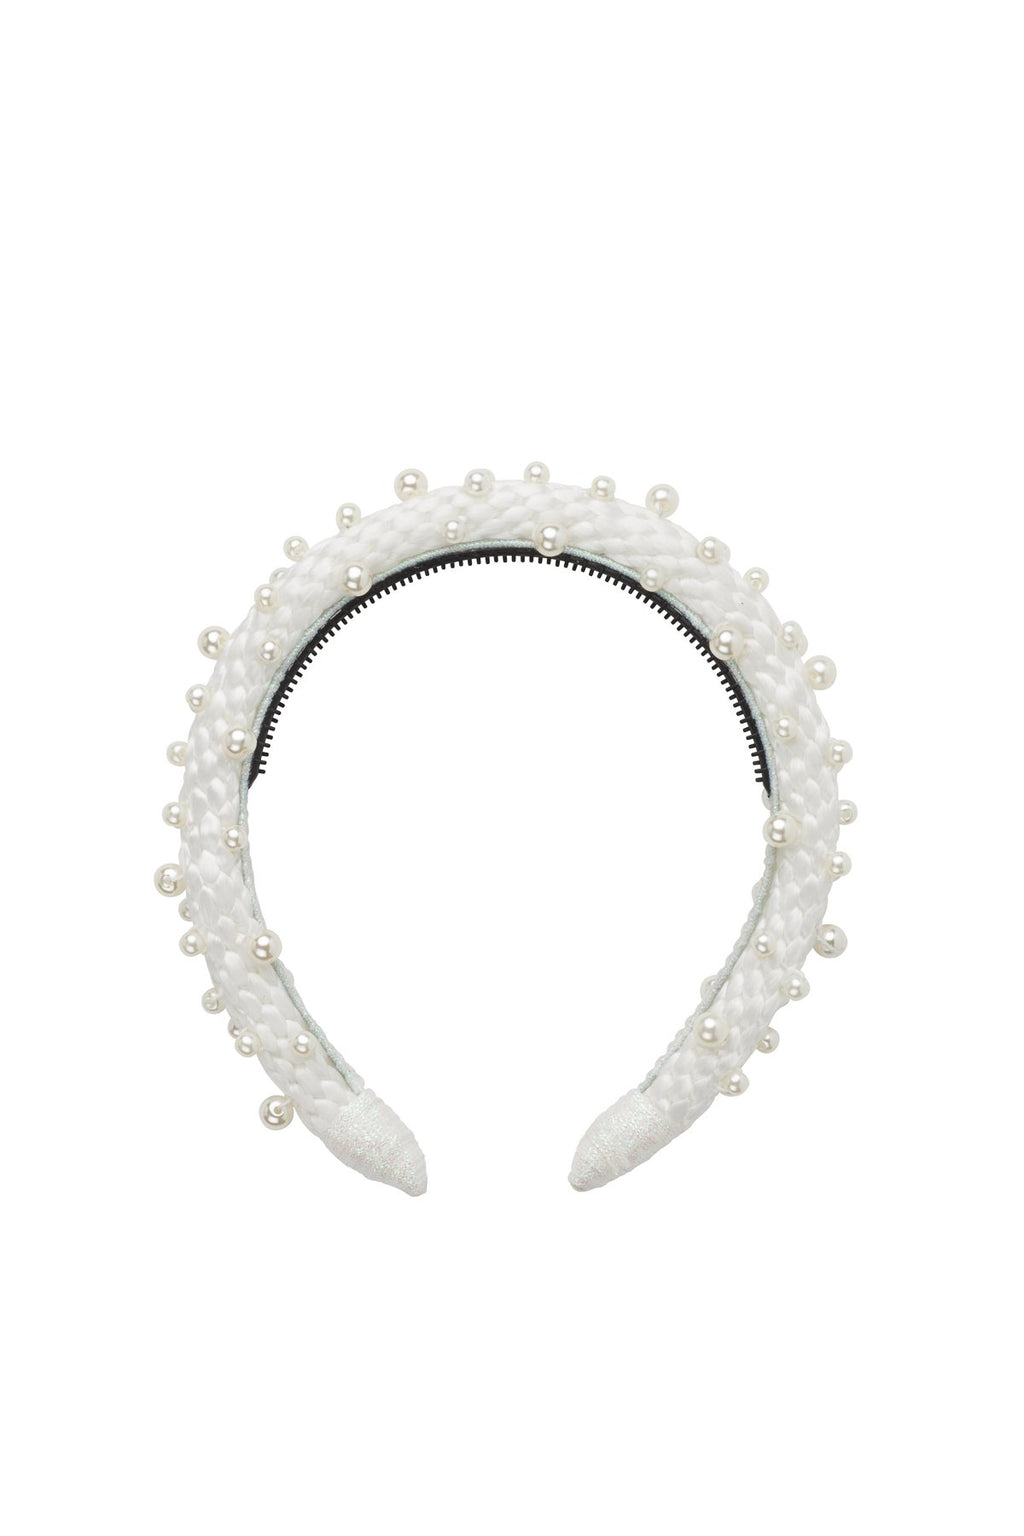 Pearl Queen Women's Headband - Dove White - PROJECT 6, modest fashion